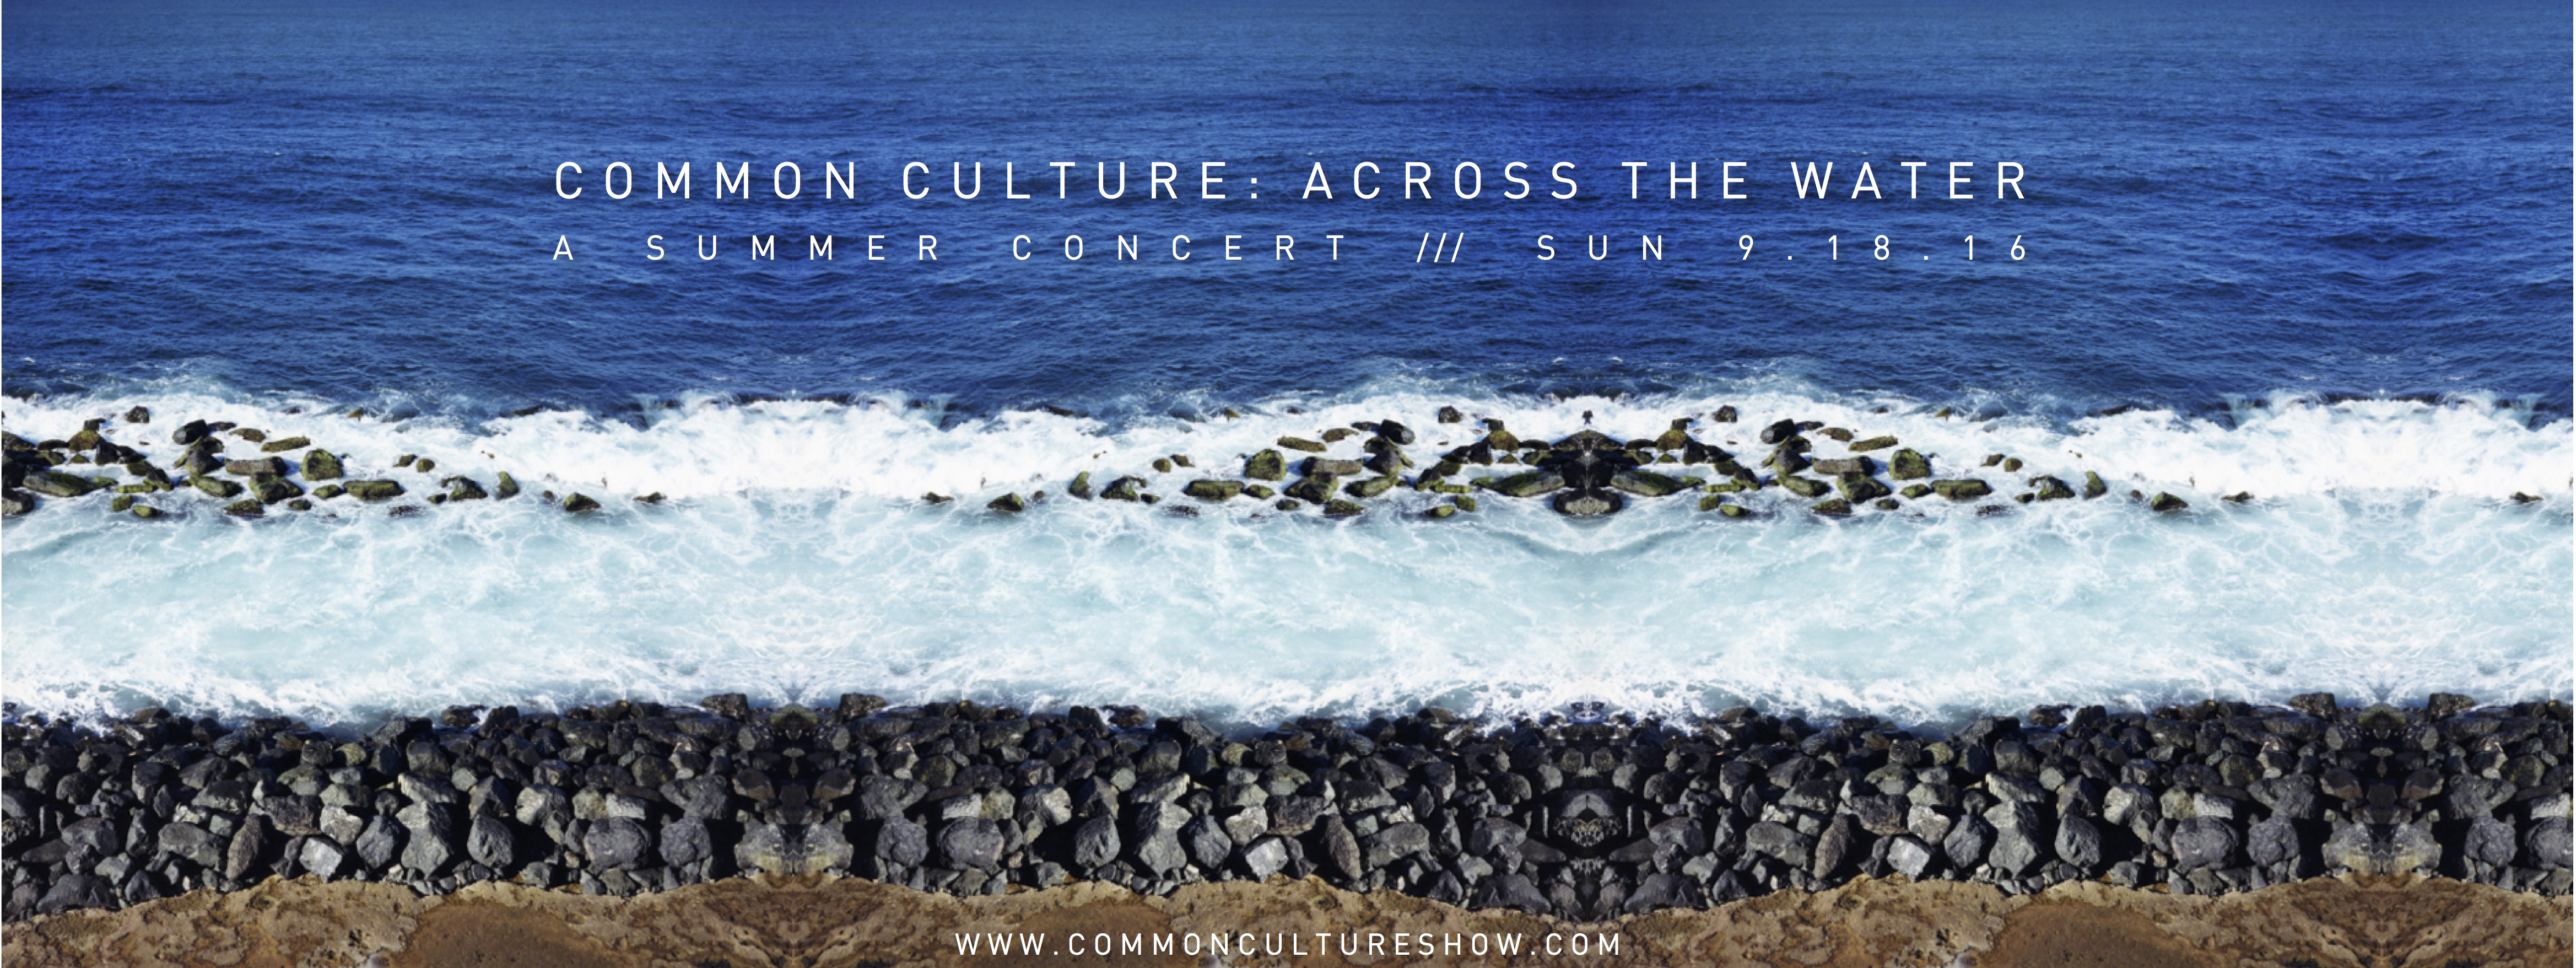 Common Culture: Across the Water